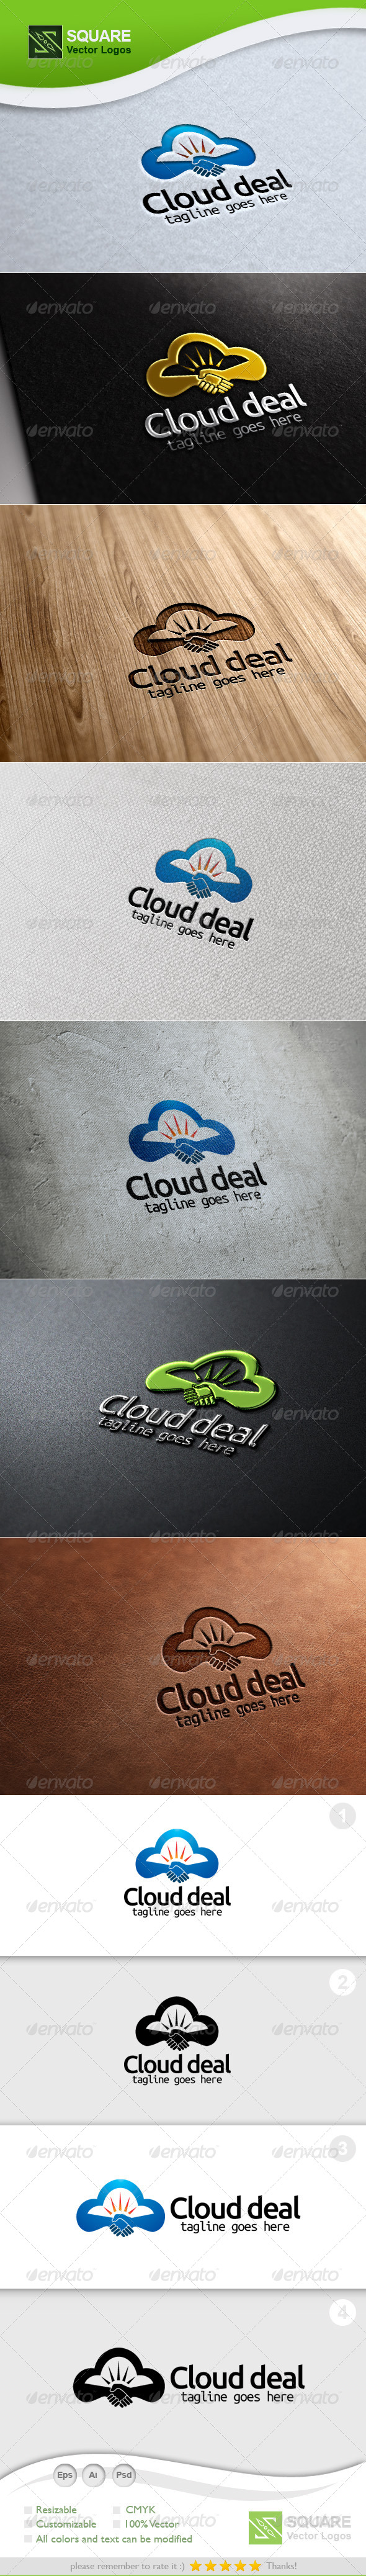 Cloud, Deal Vector Logo Template - Symbols Logo Templates